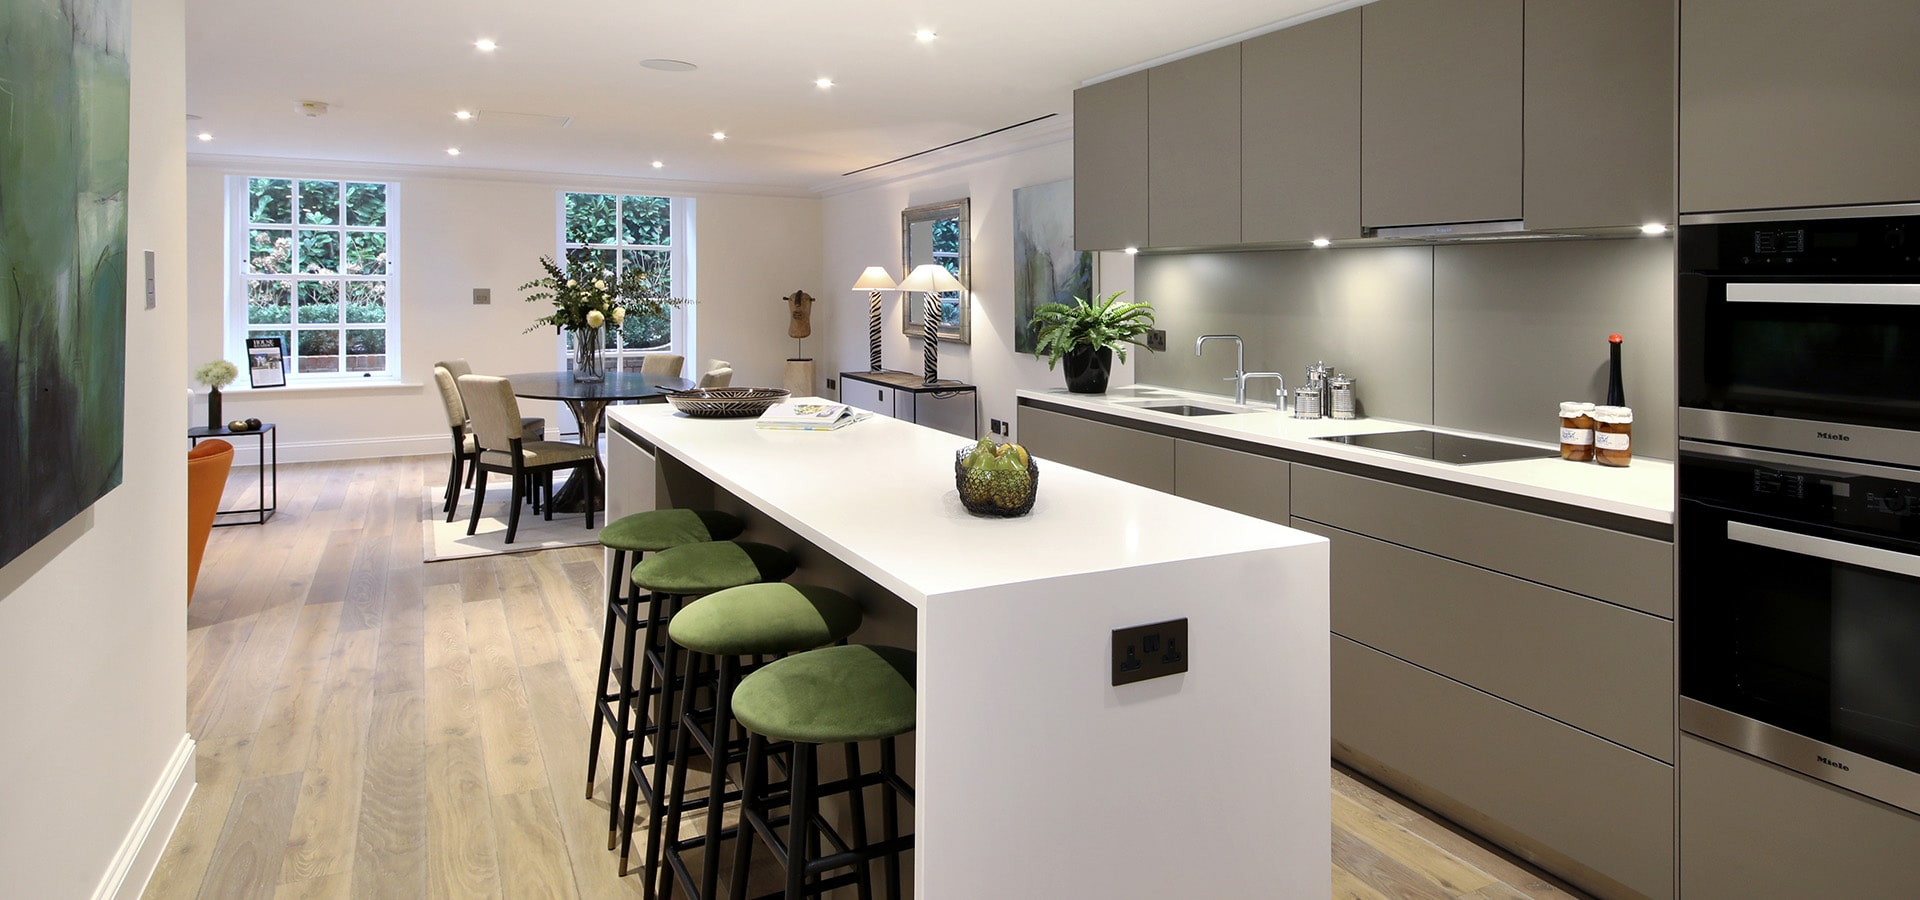 2 & 3 Bed Luxury Apartments Wimbledon London | Eagle House